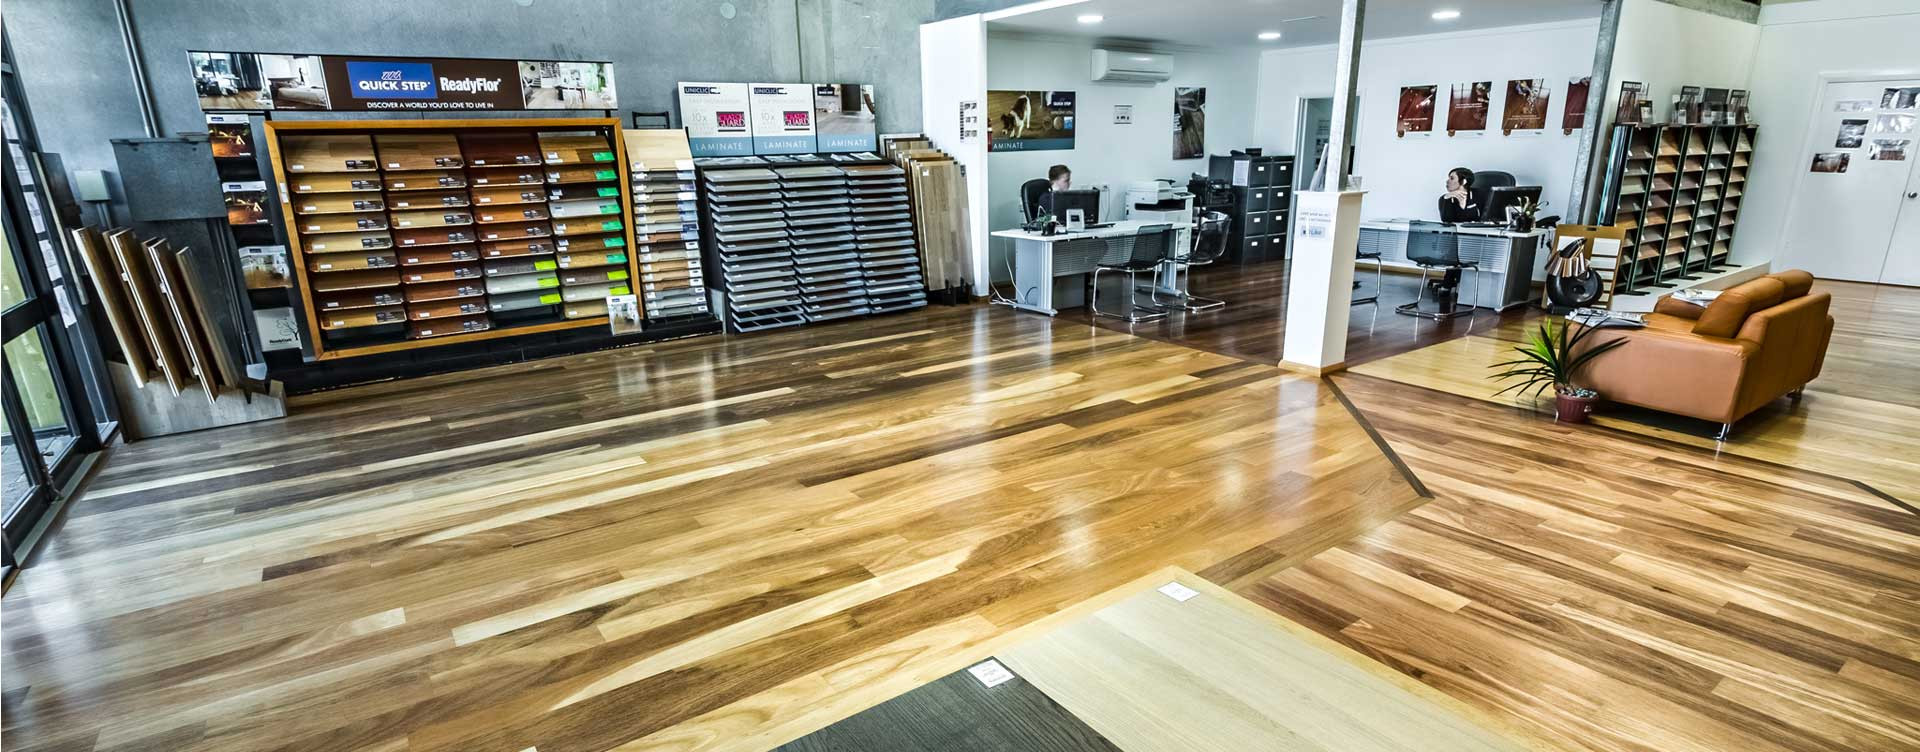 buy direct hardwood flooring of timber flooring perth coastal flooring wa quality wooden throughout thats why they call us the home of fine wood floors